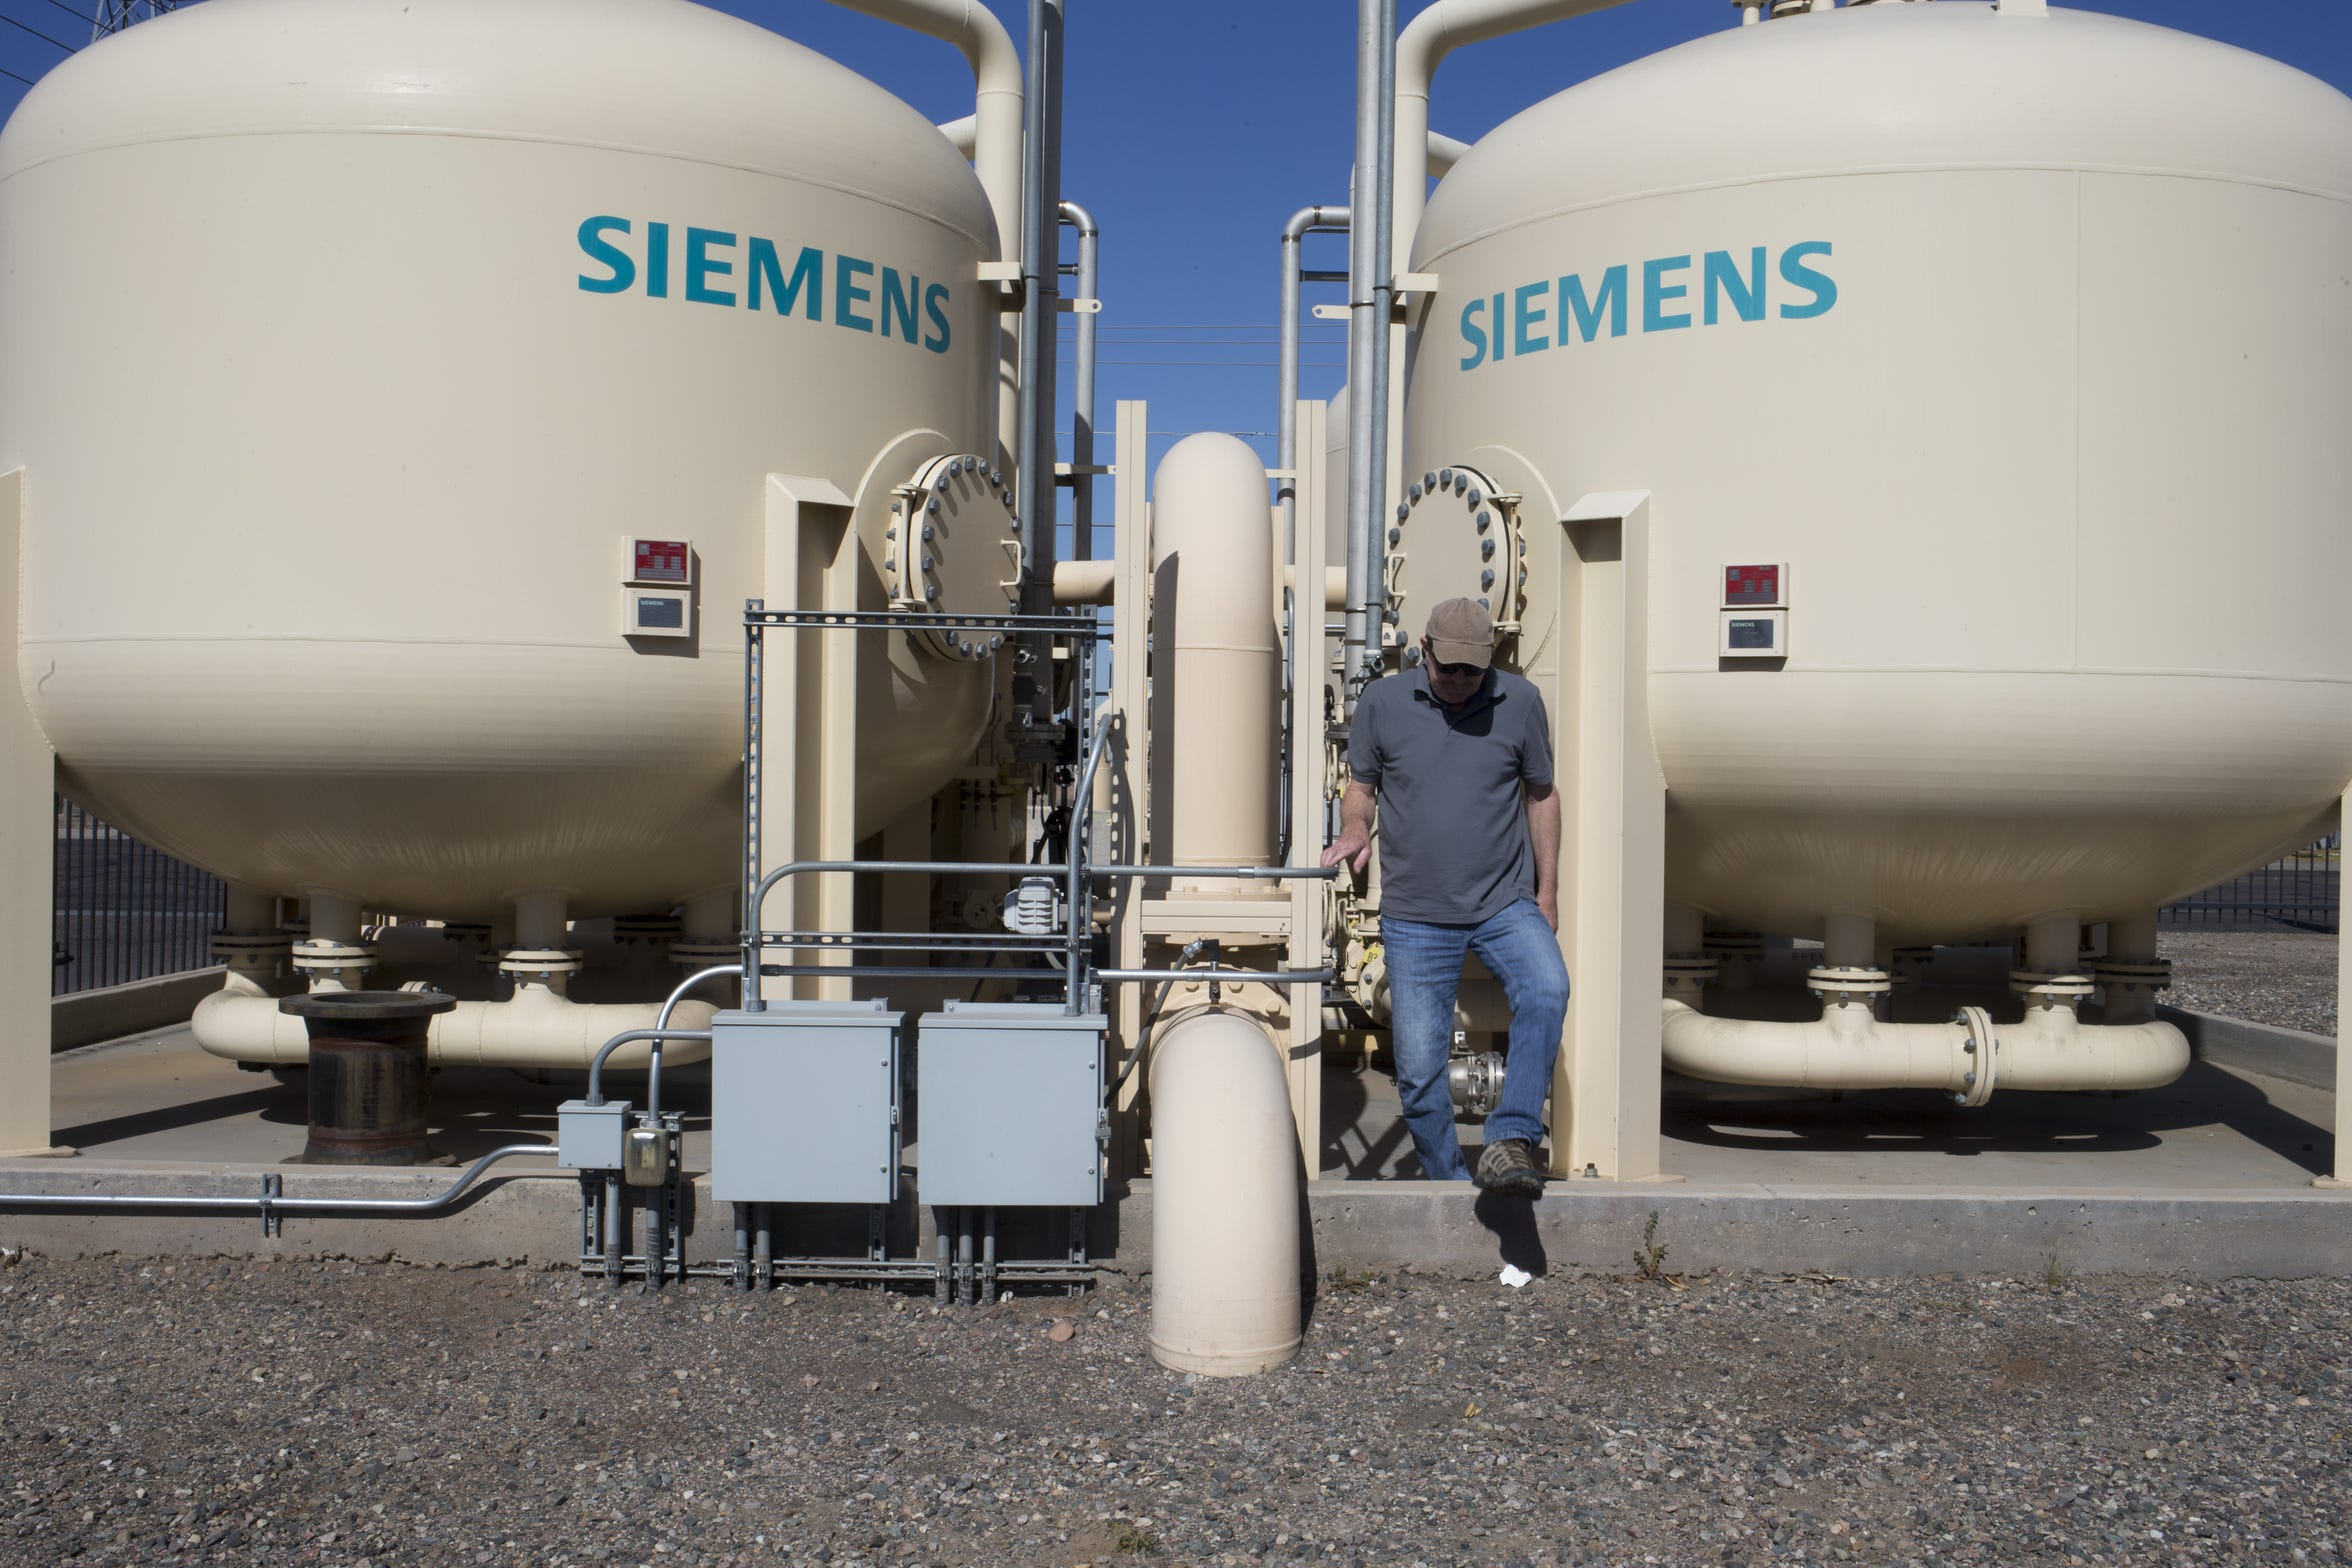 Joel Peterson of the firm Synergy Environmental works at the treatment system at one of the Roosevelt Irrigation District's wells, at 35th Avenue and Sherman Street in Phoenix.